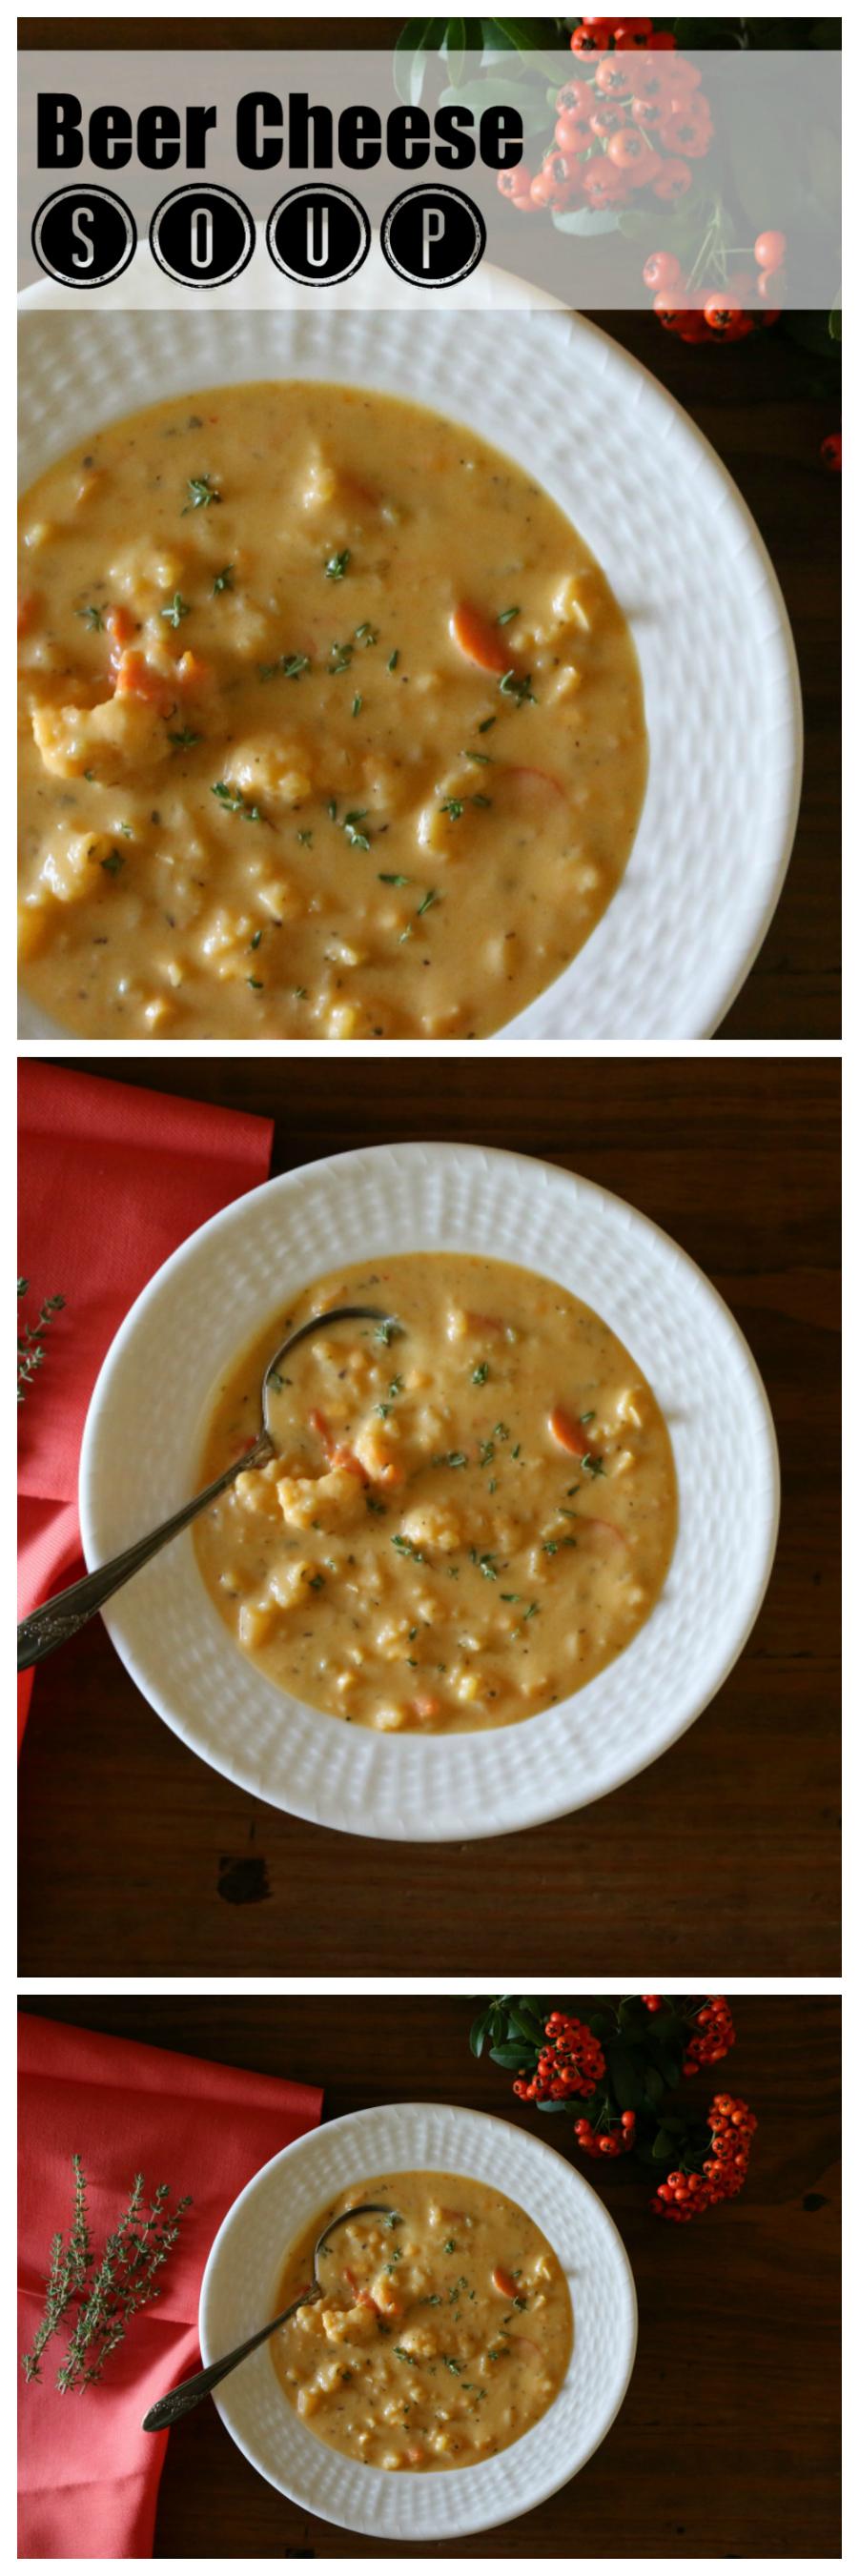 Beer Cheese Soup with Chunky vegetables like cauliflower and carrots. CeceliasGoodStuff.com | Good Food for Good People